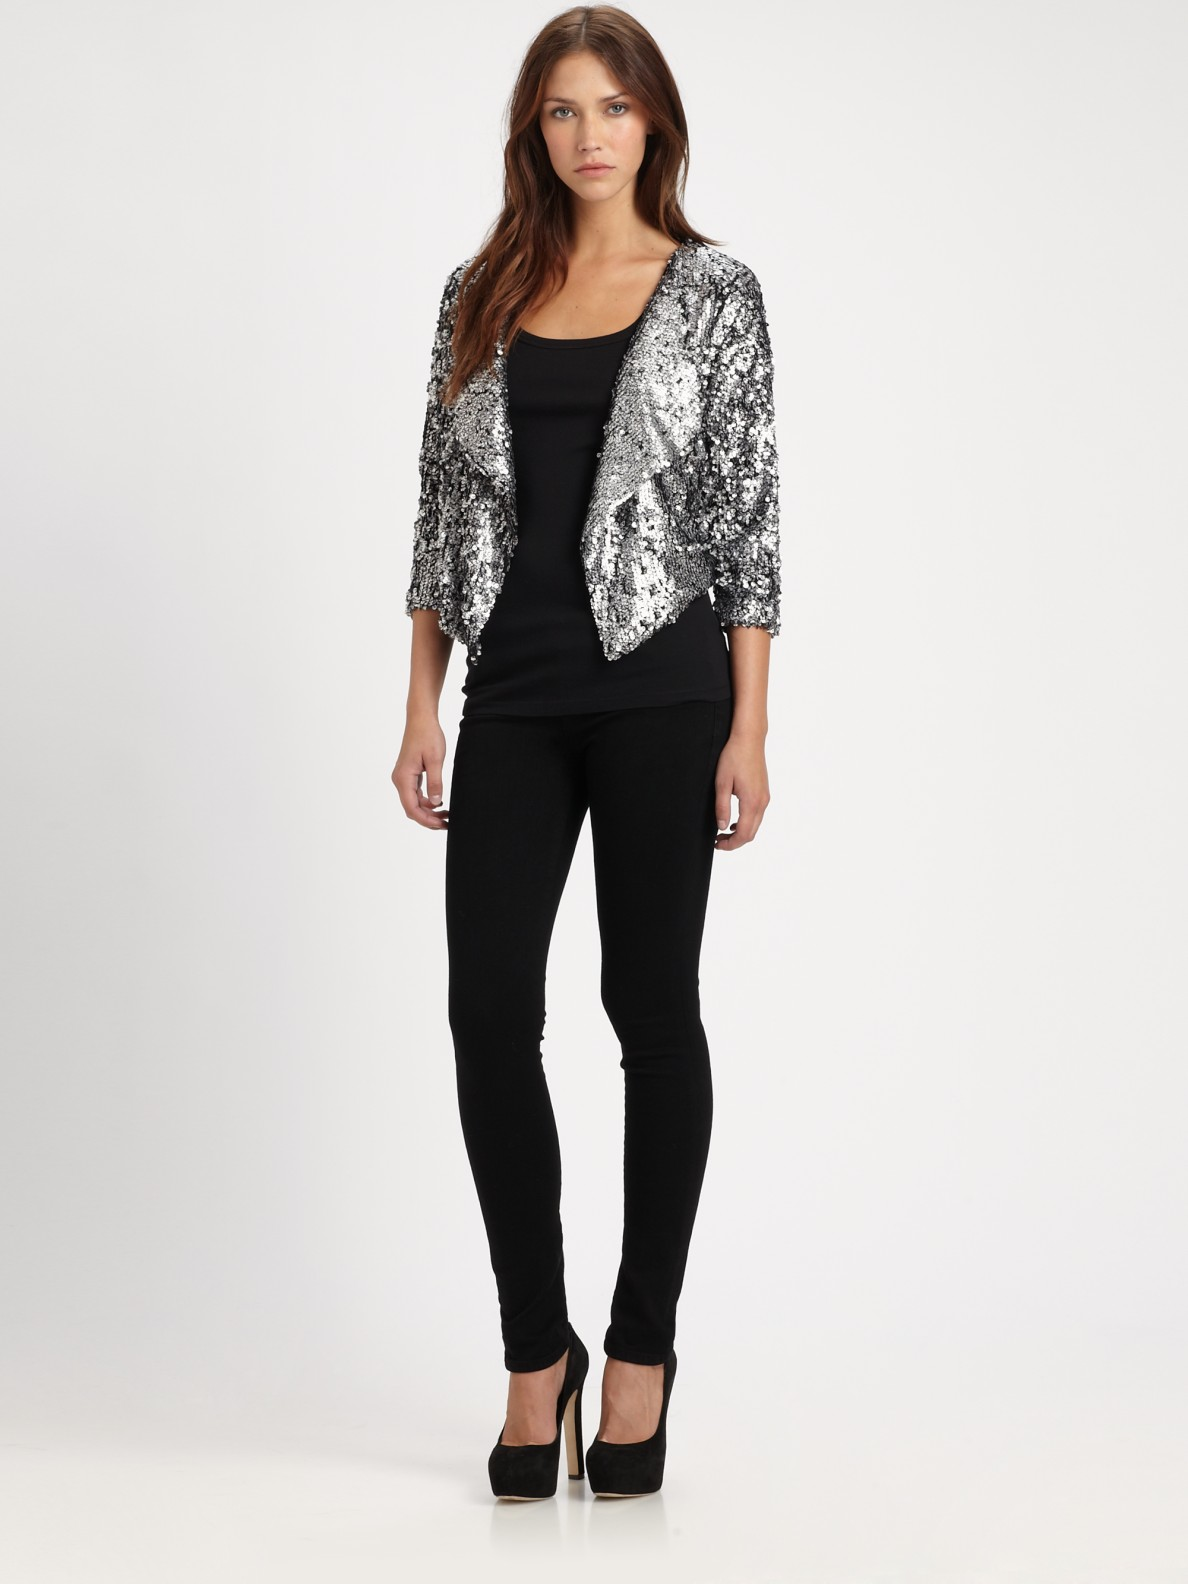 T-bags Cropped Sequin Jacket in Silver